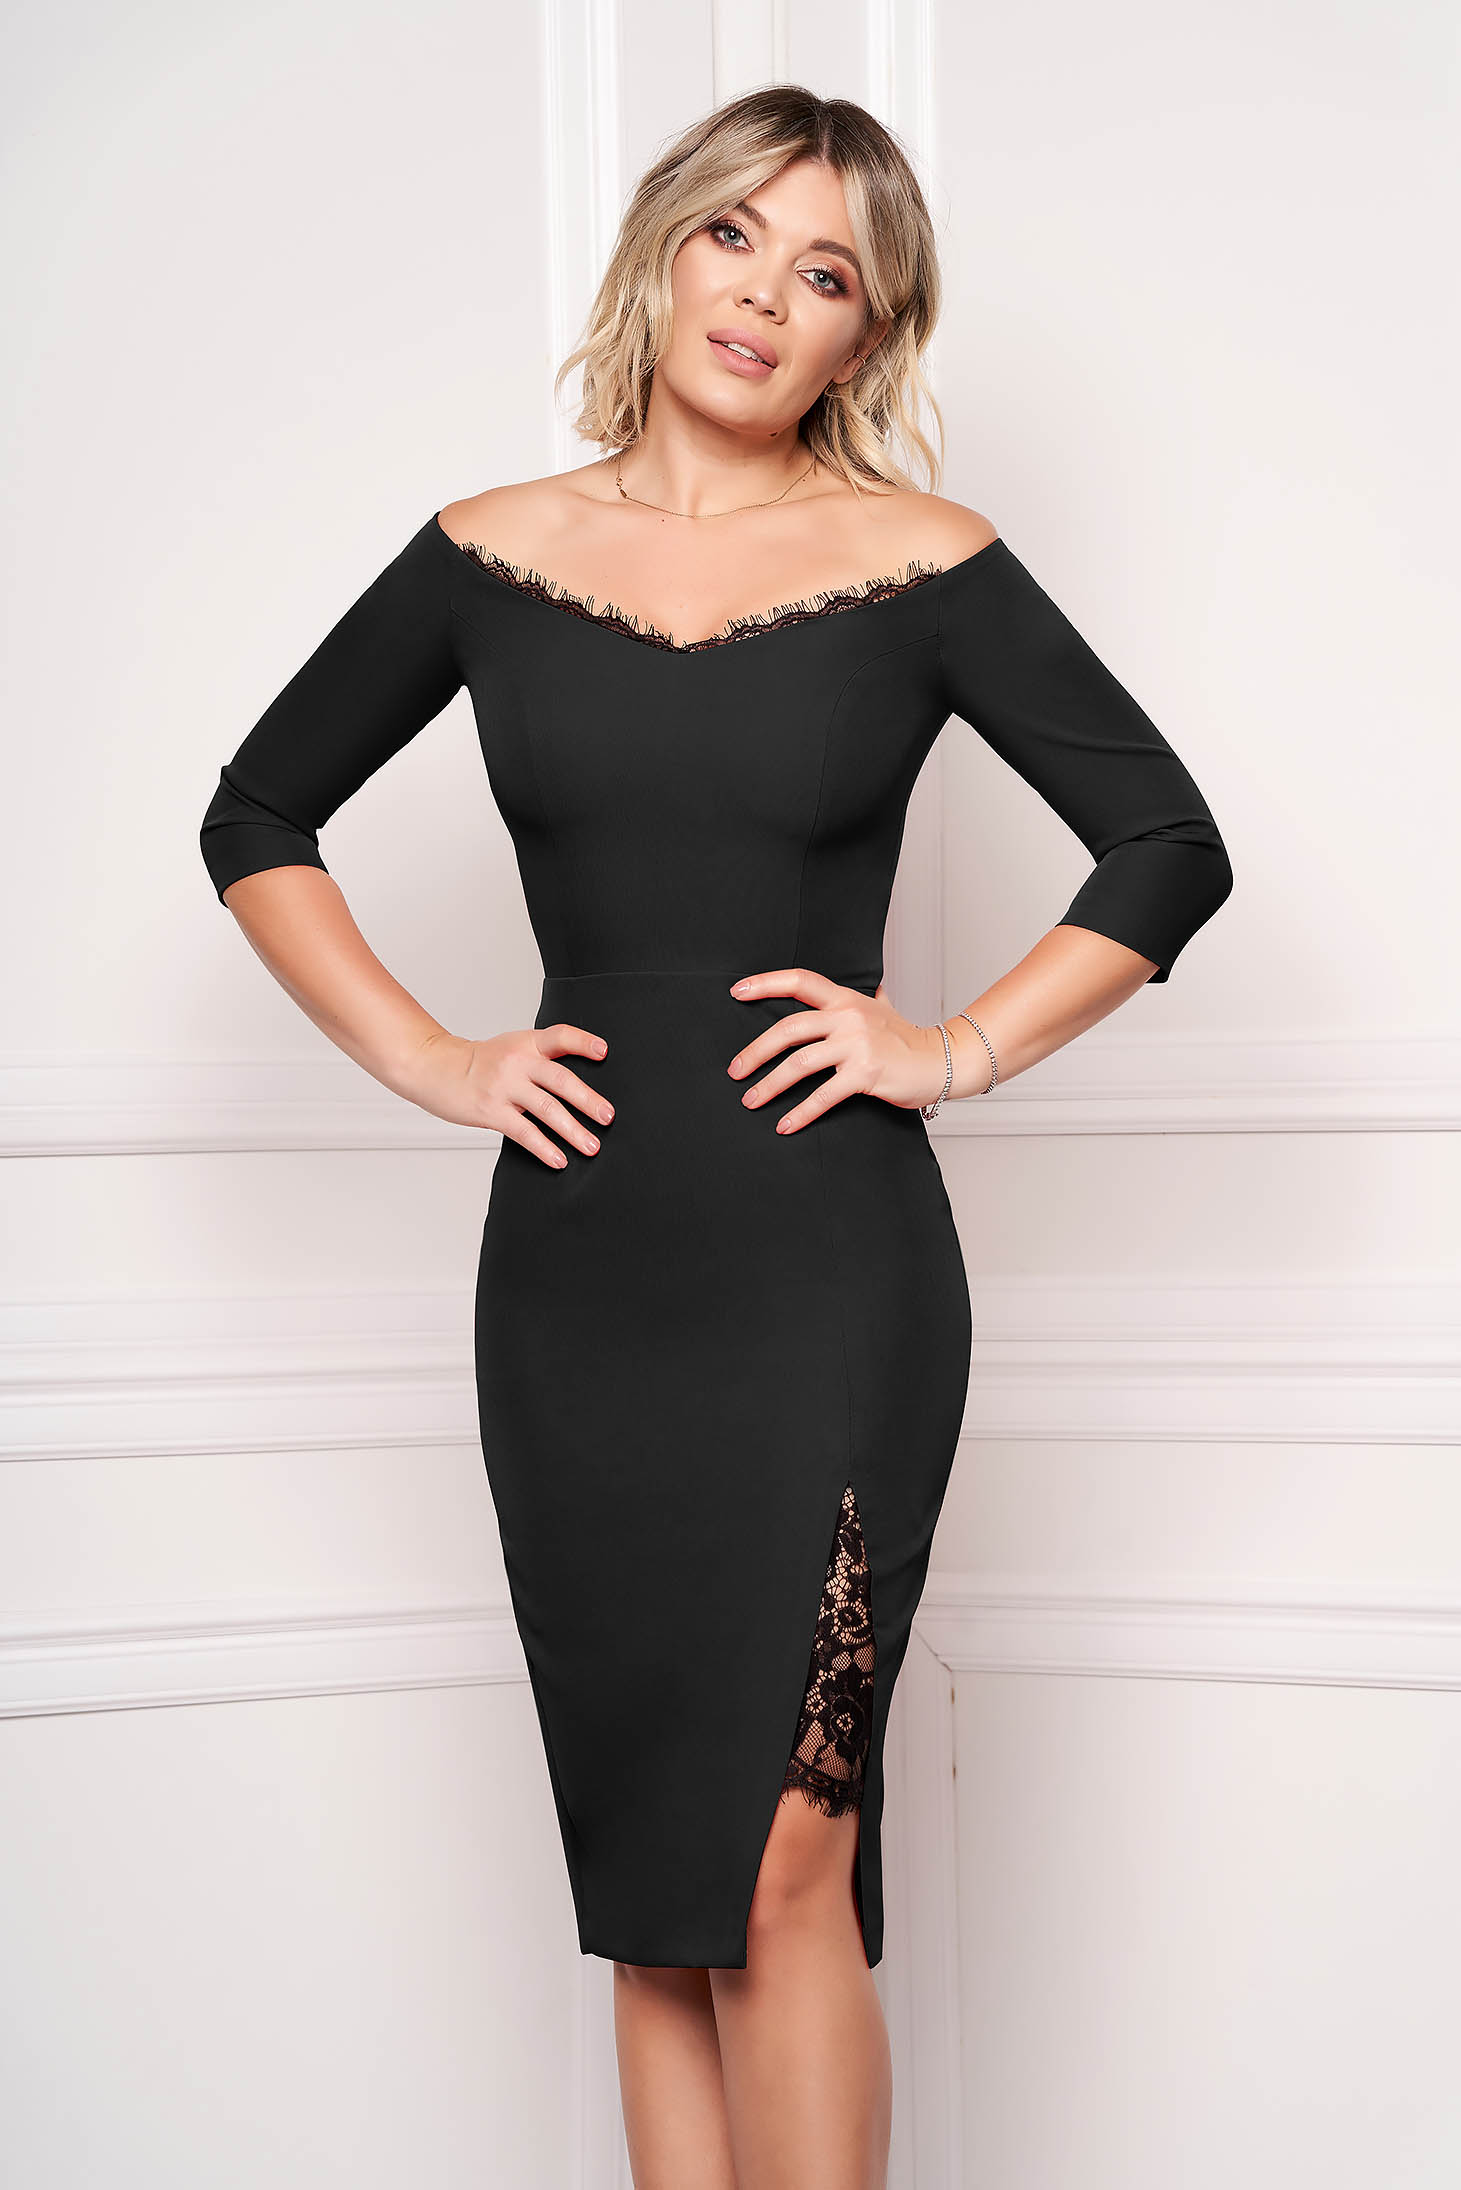 StarShinerS black dress elegant midi pencil cloth thin fabric with 3/4 sleeves naked shoulders with lace details